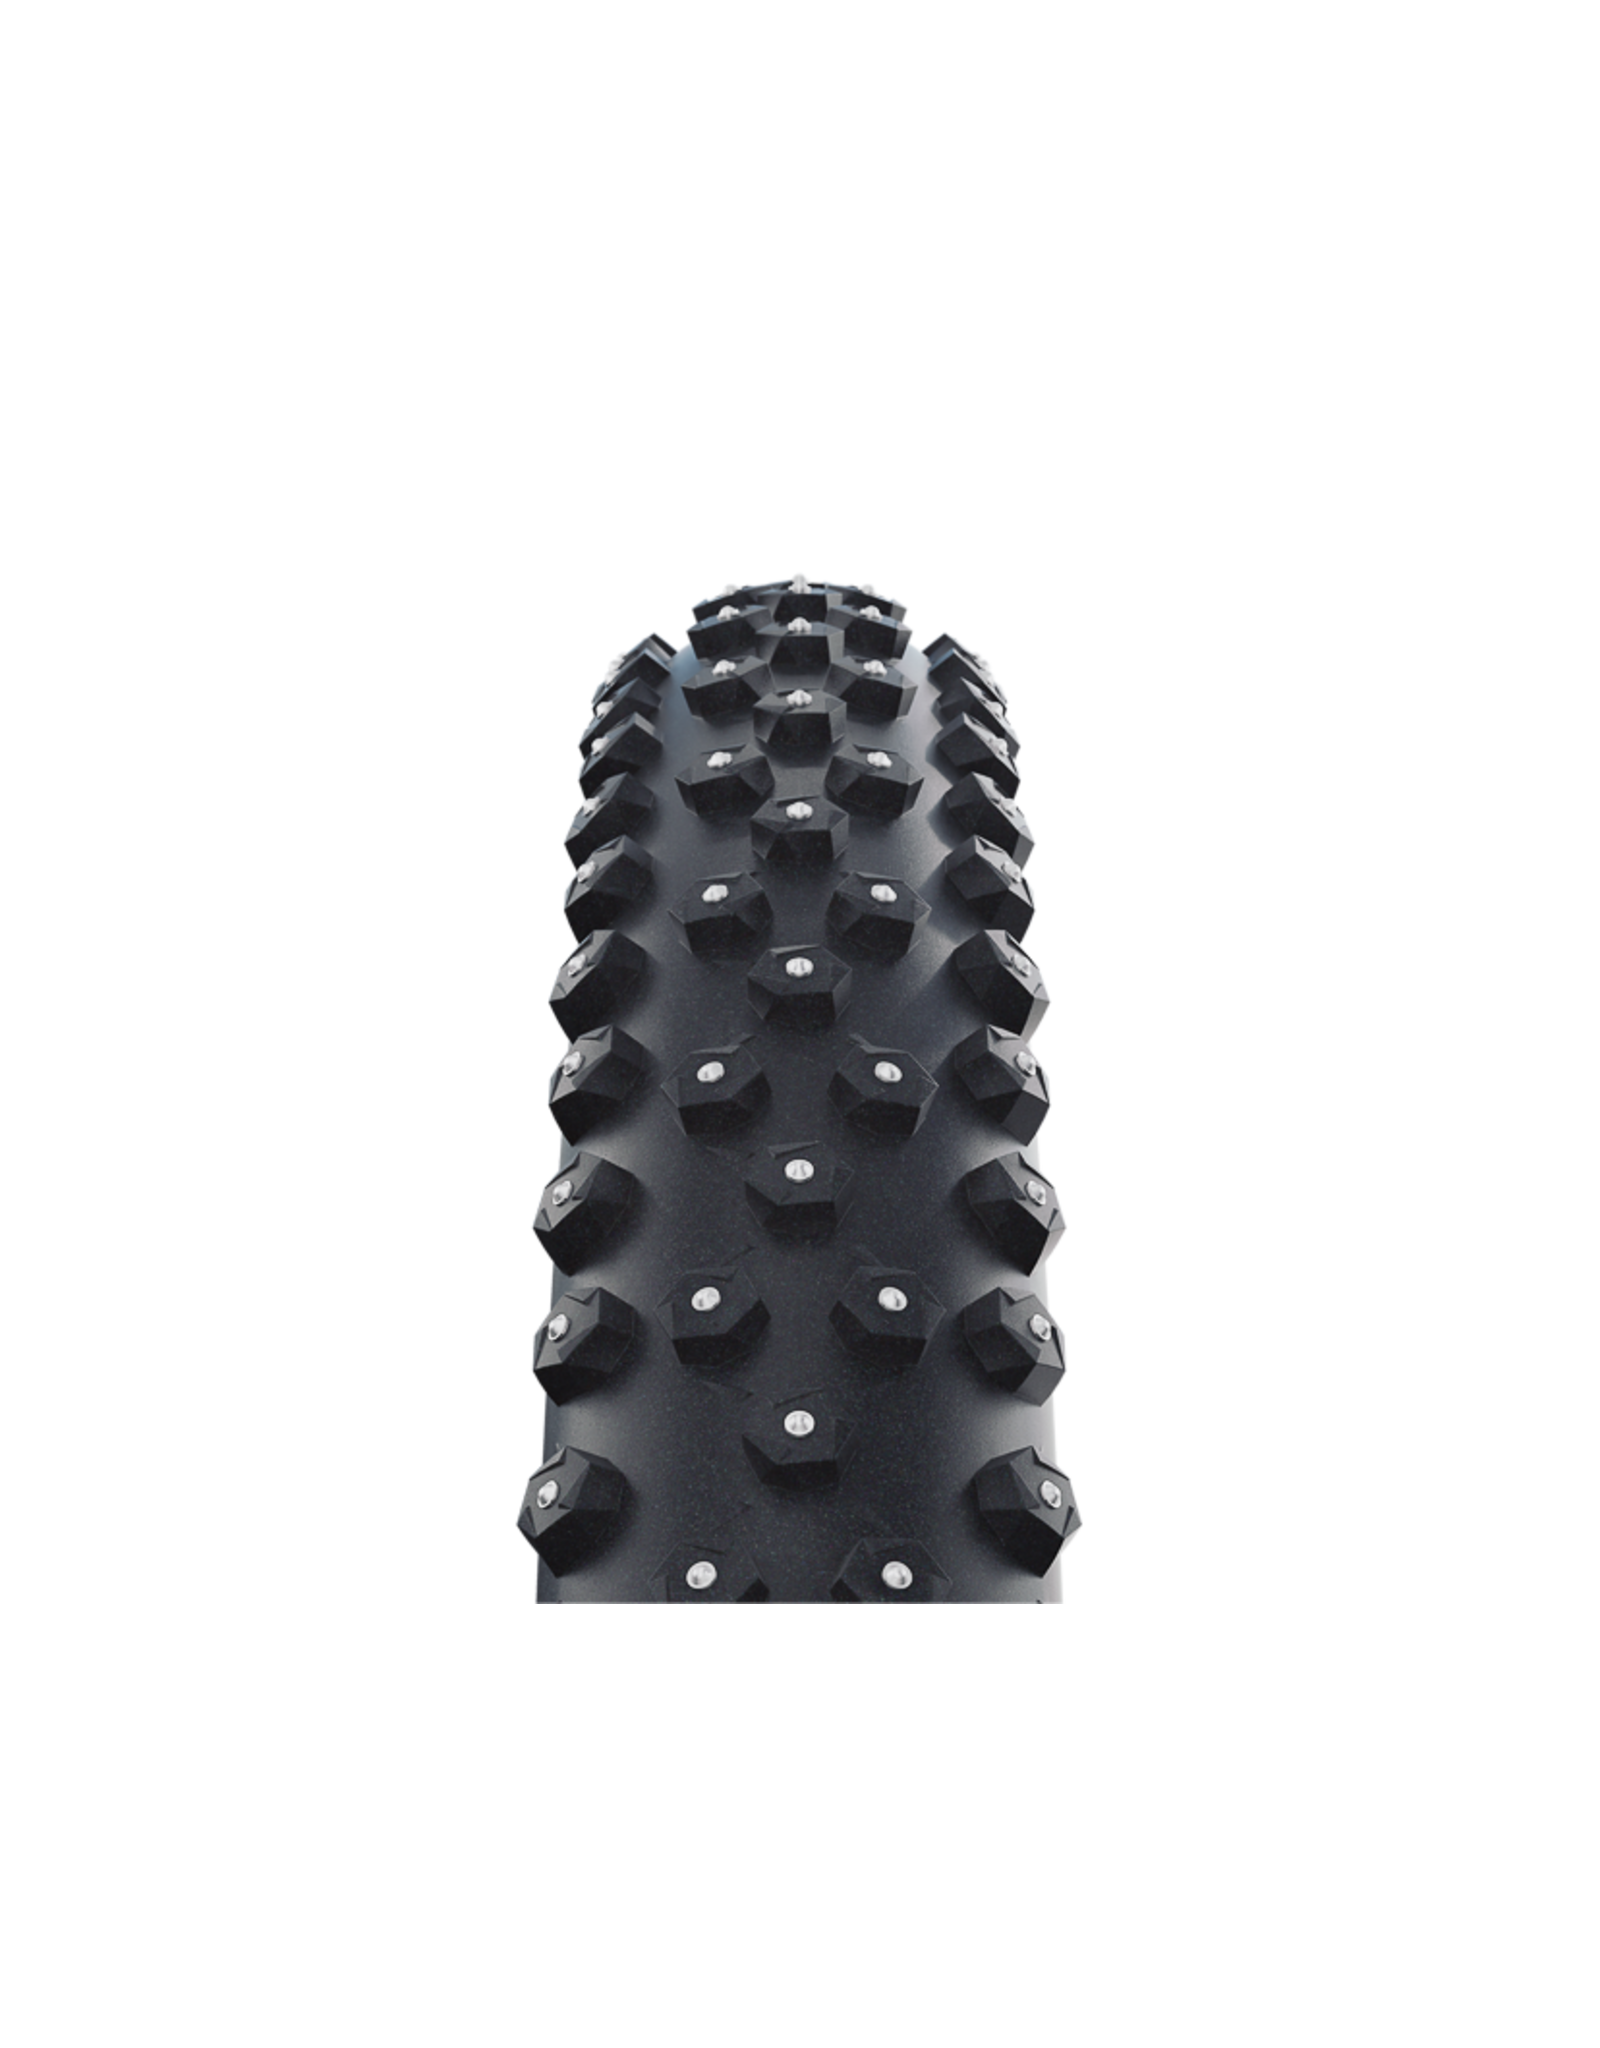 SCHWALBE 27.5x2.25 Ice Spiker Pro, Race Guard, Winter Compound (378 Steel Studs), Wire bead